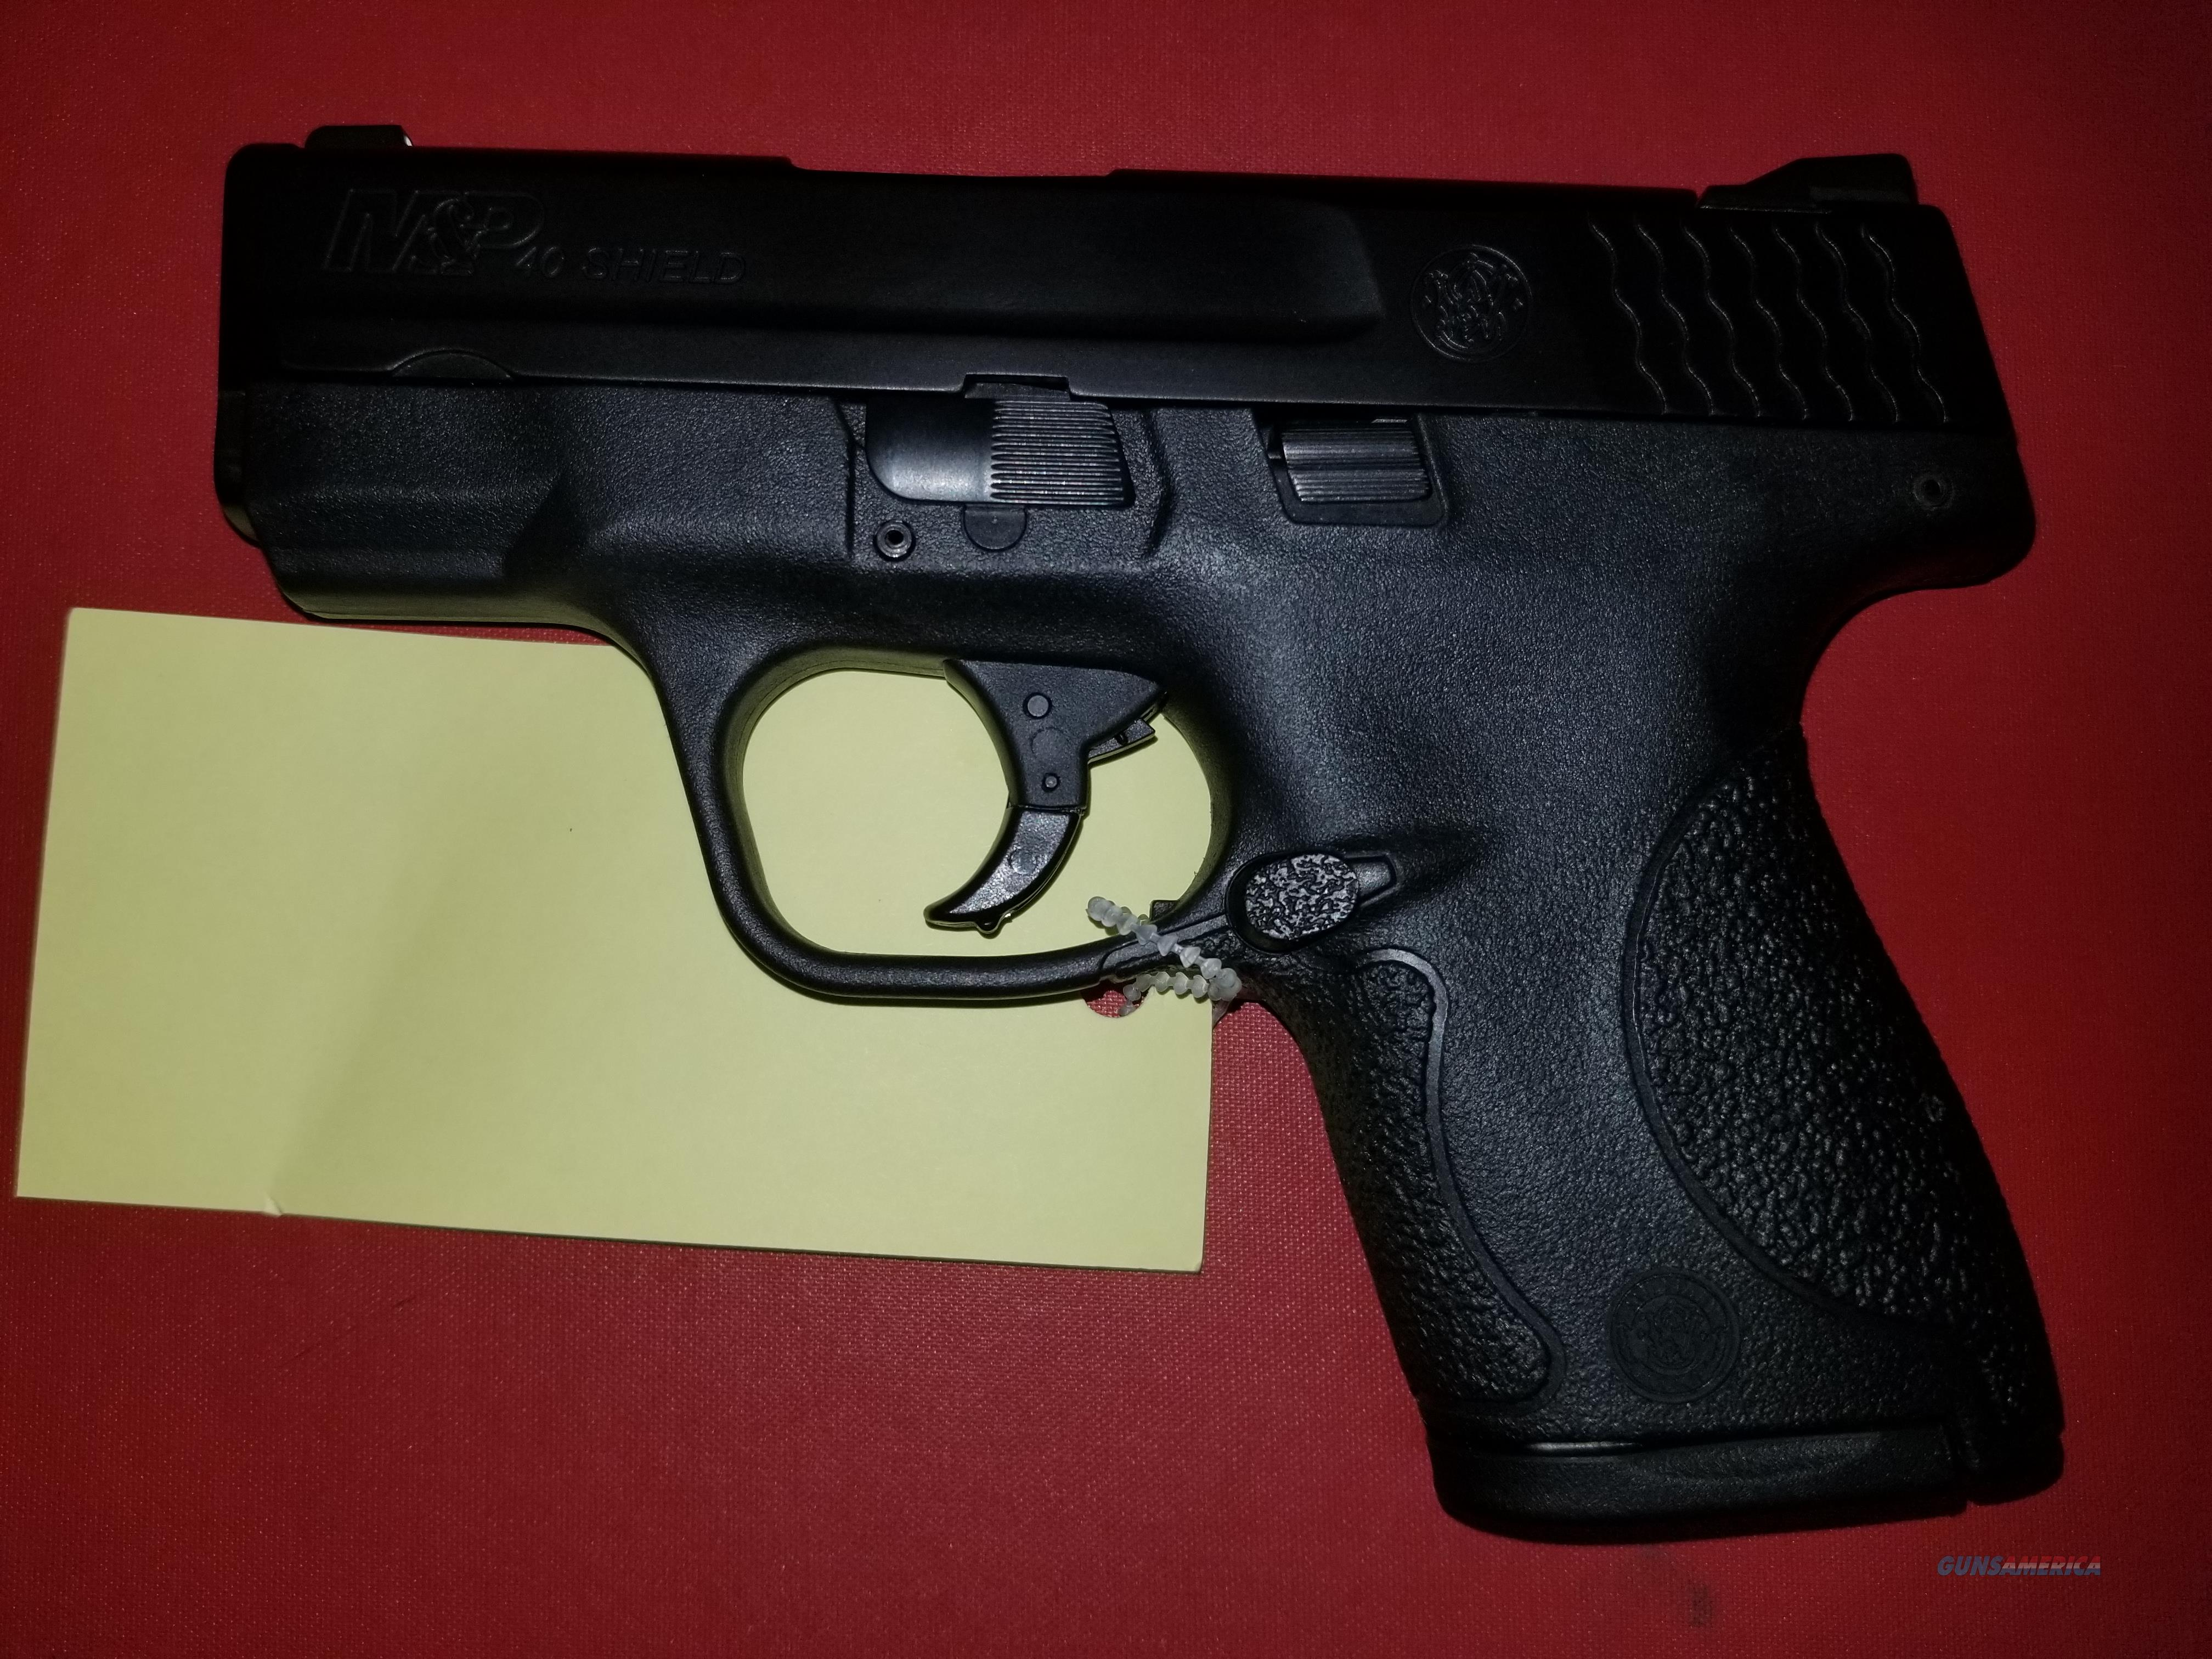 S&W m&p40 shield  Guns > Pistols > Smith & Wesson Pistols - Autos > Shield